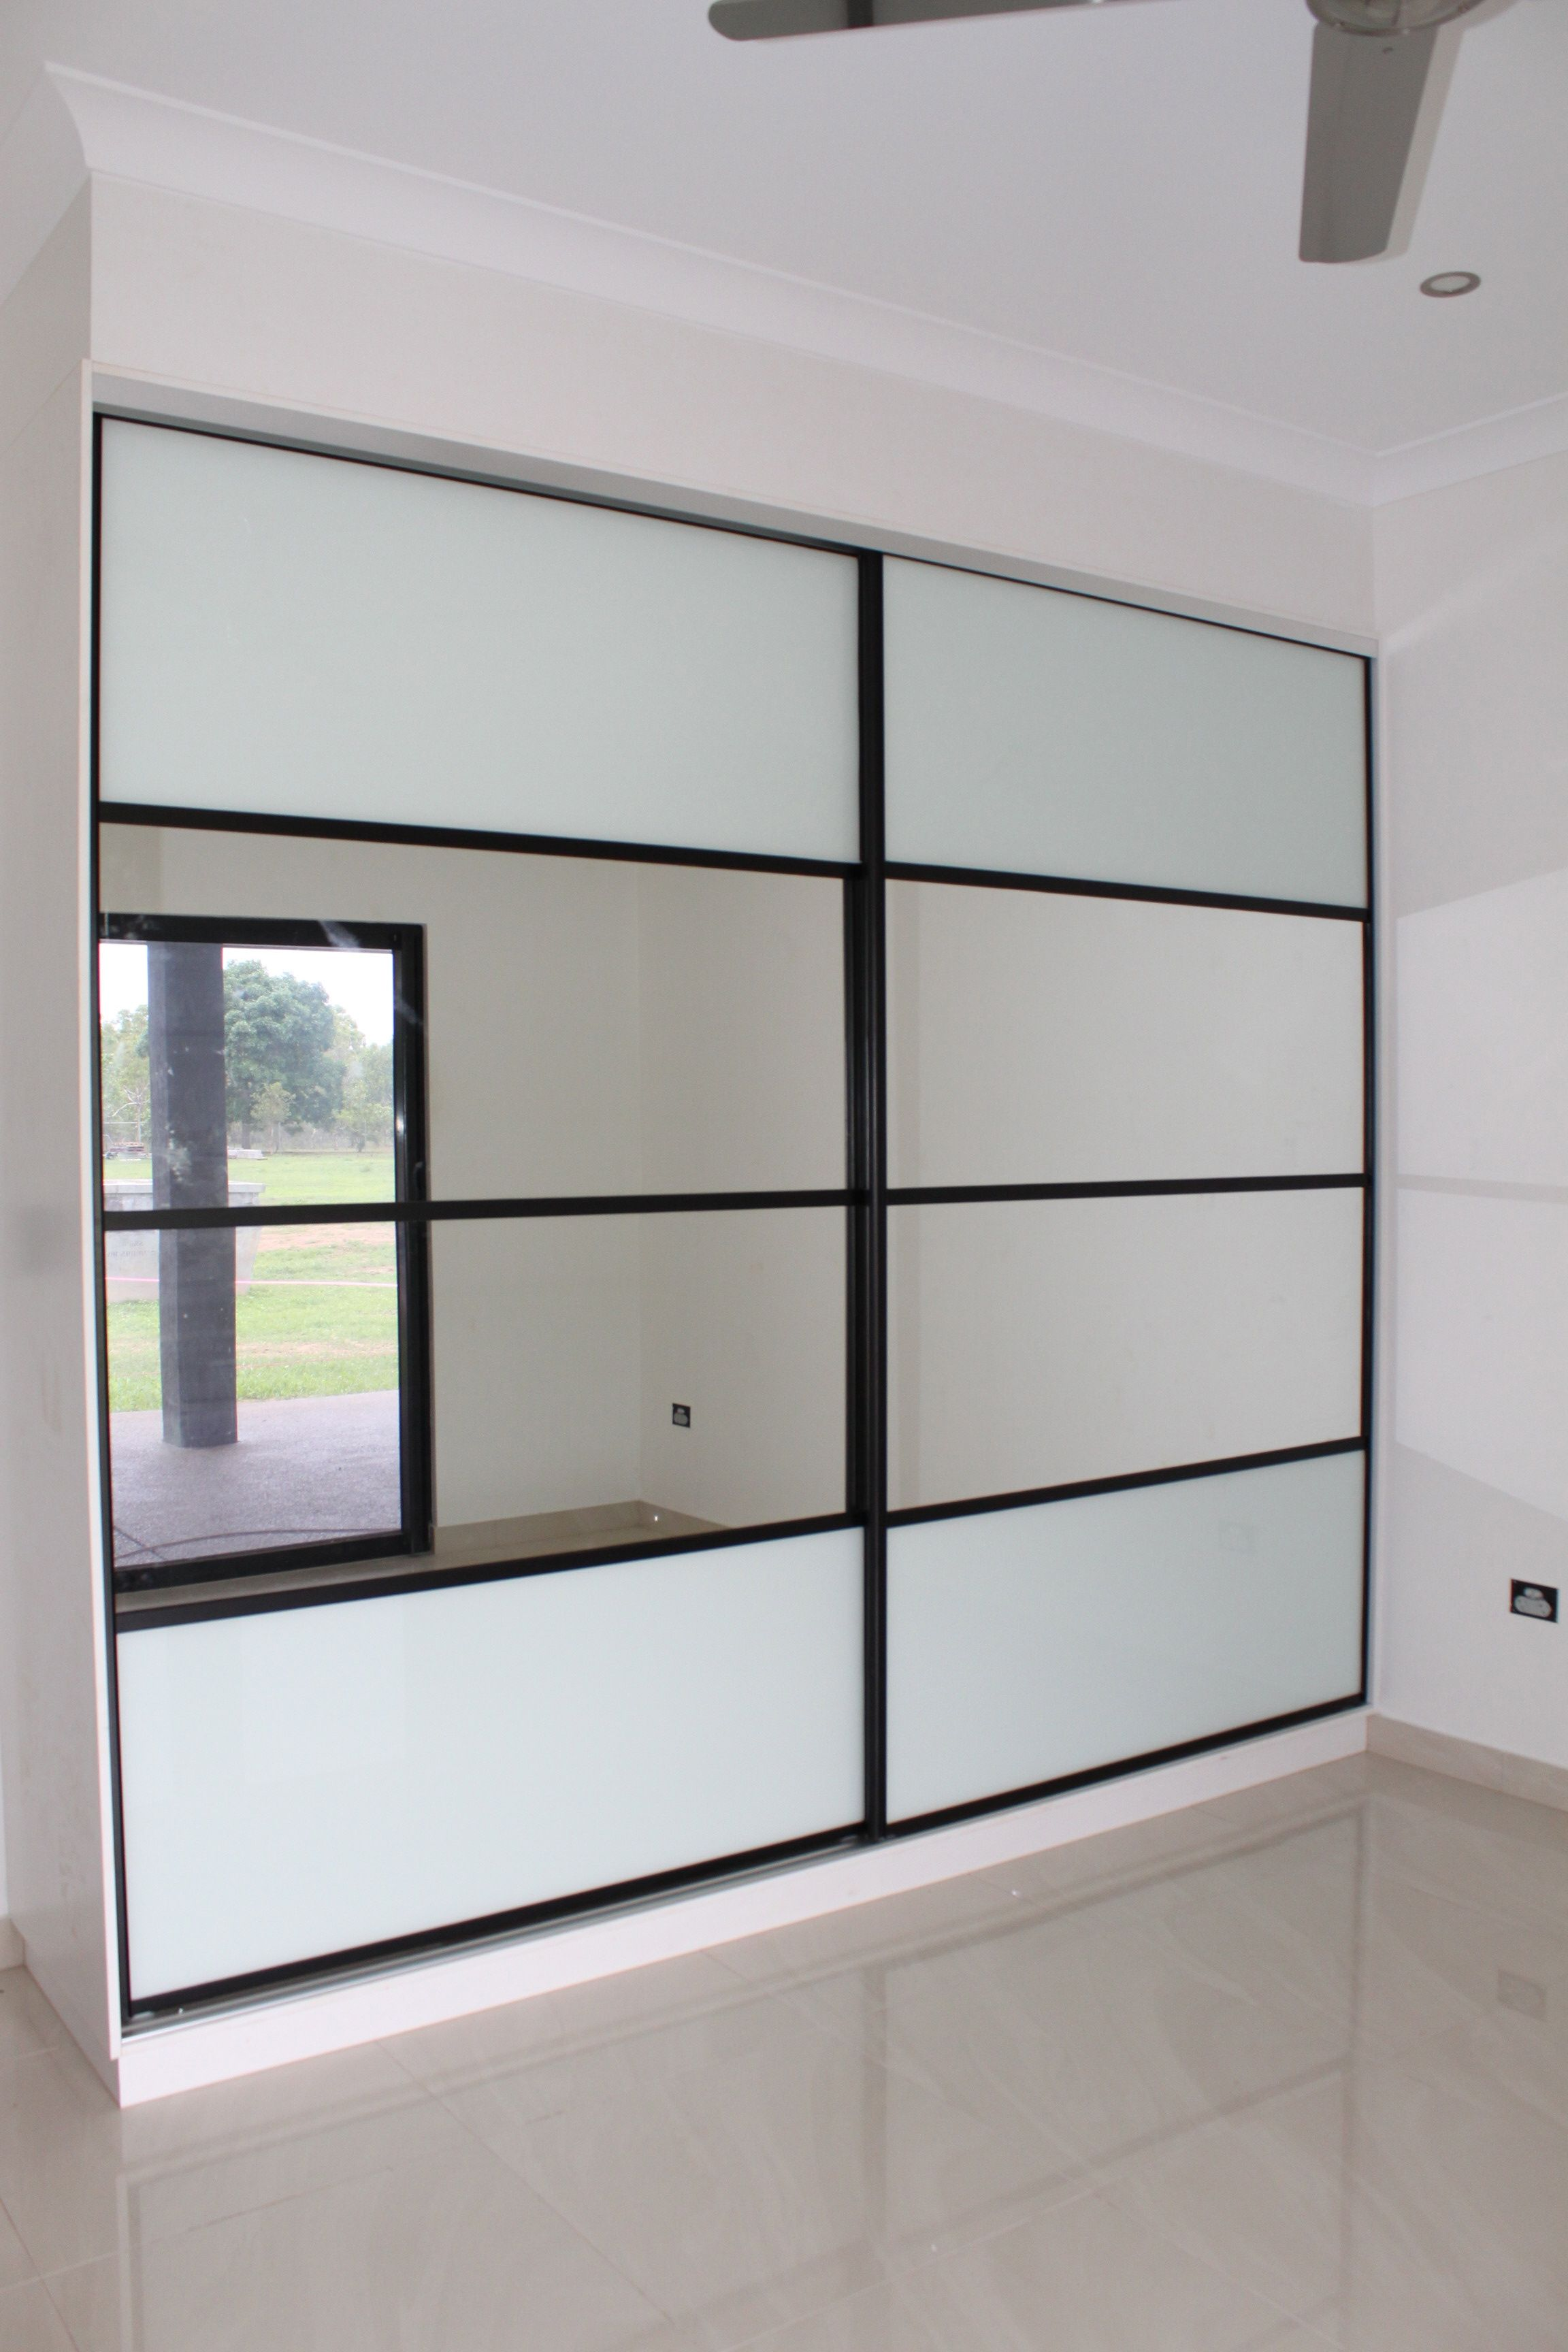 Sliding Wardrobe Doors Composite 4 Panel Doors White